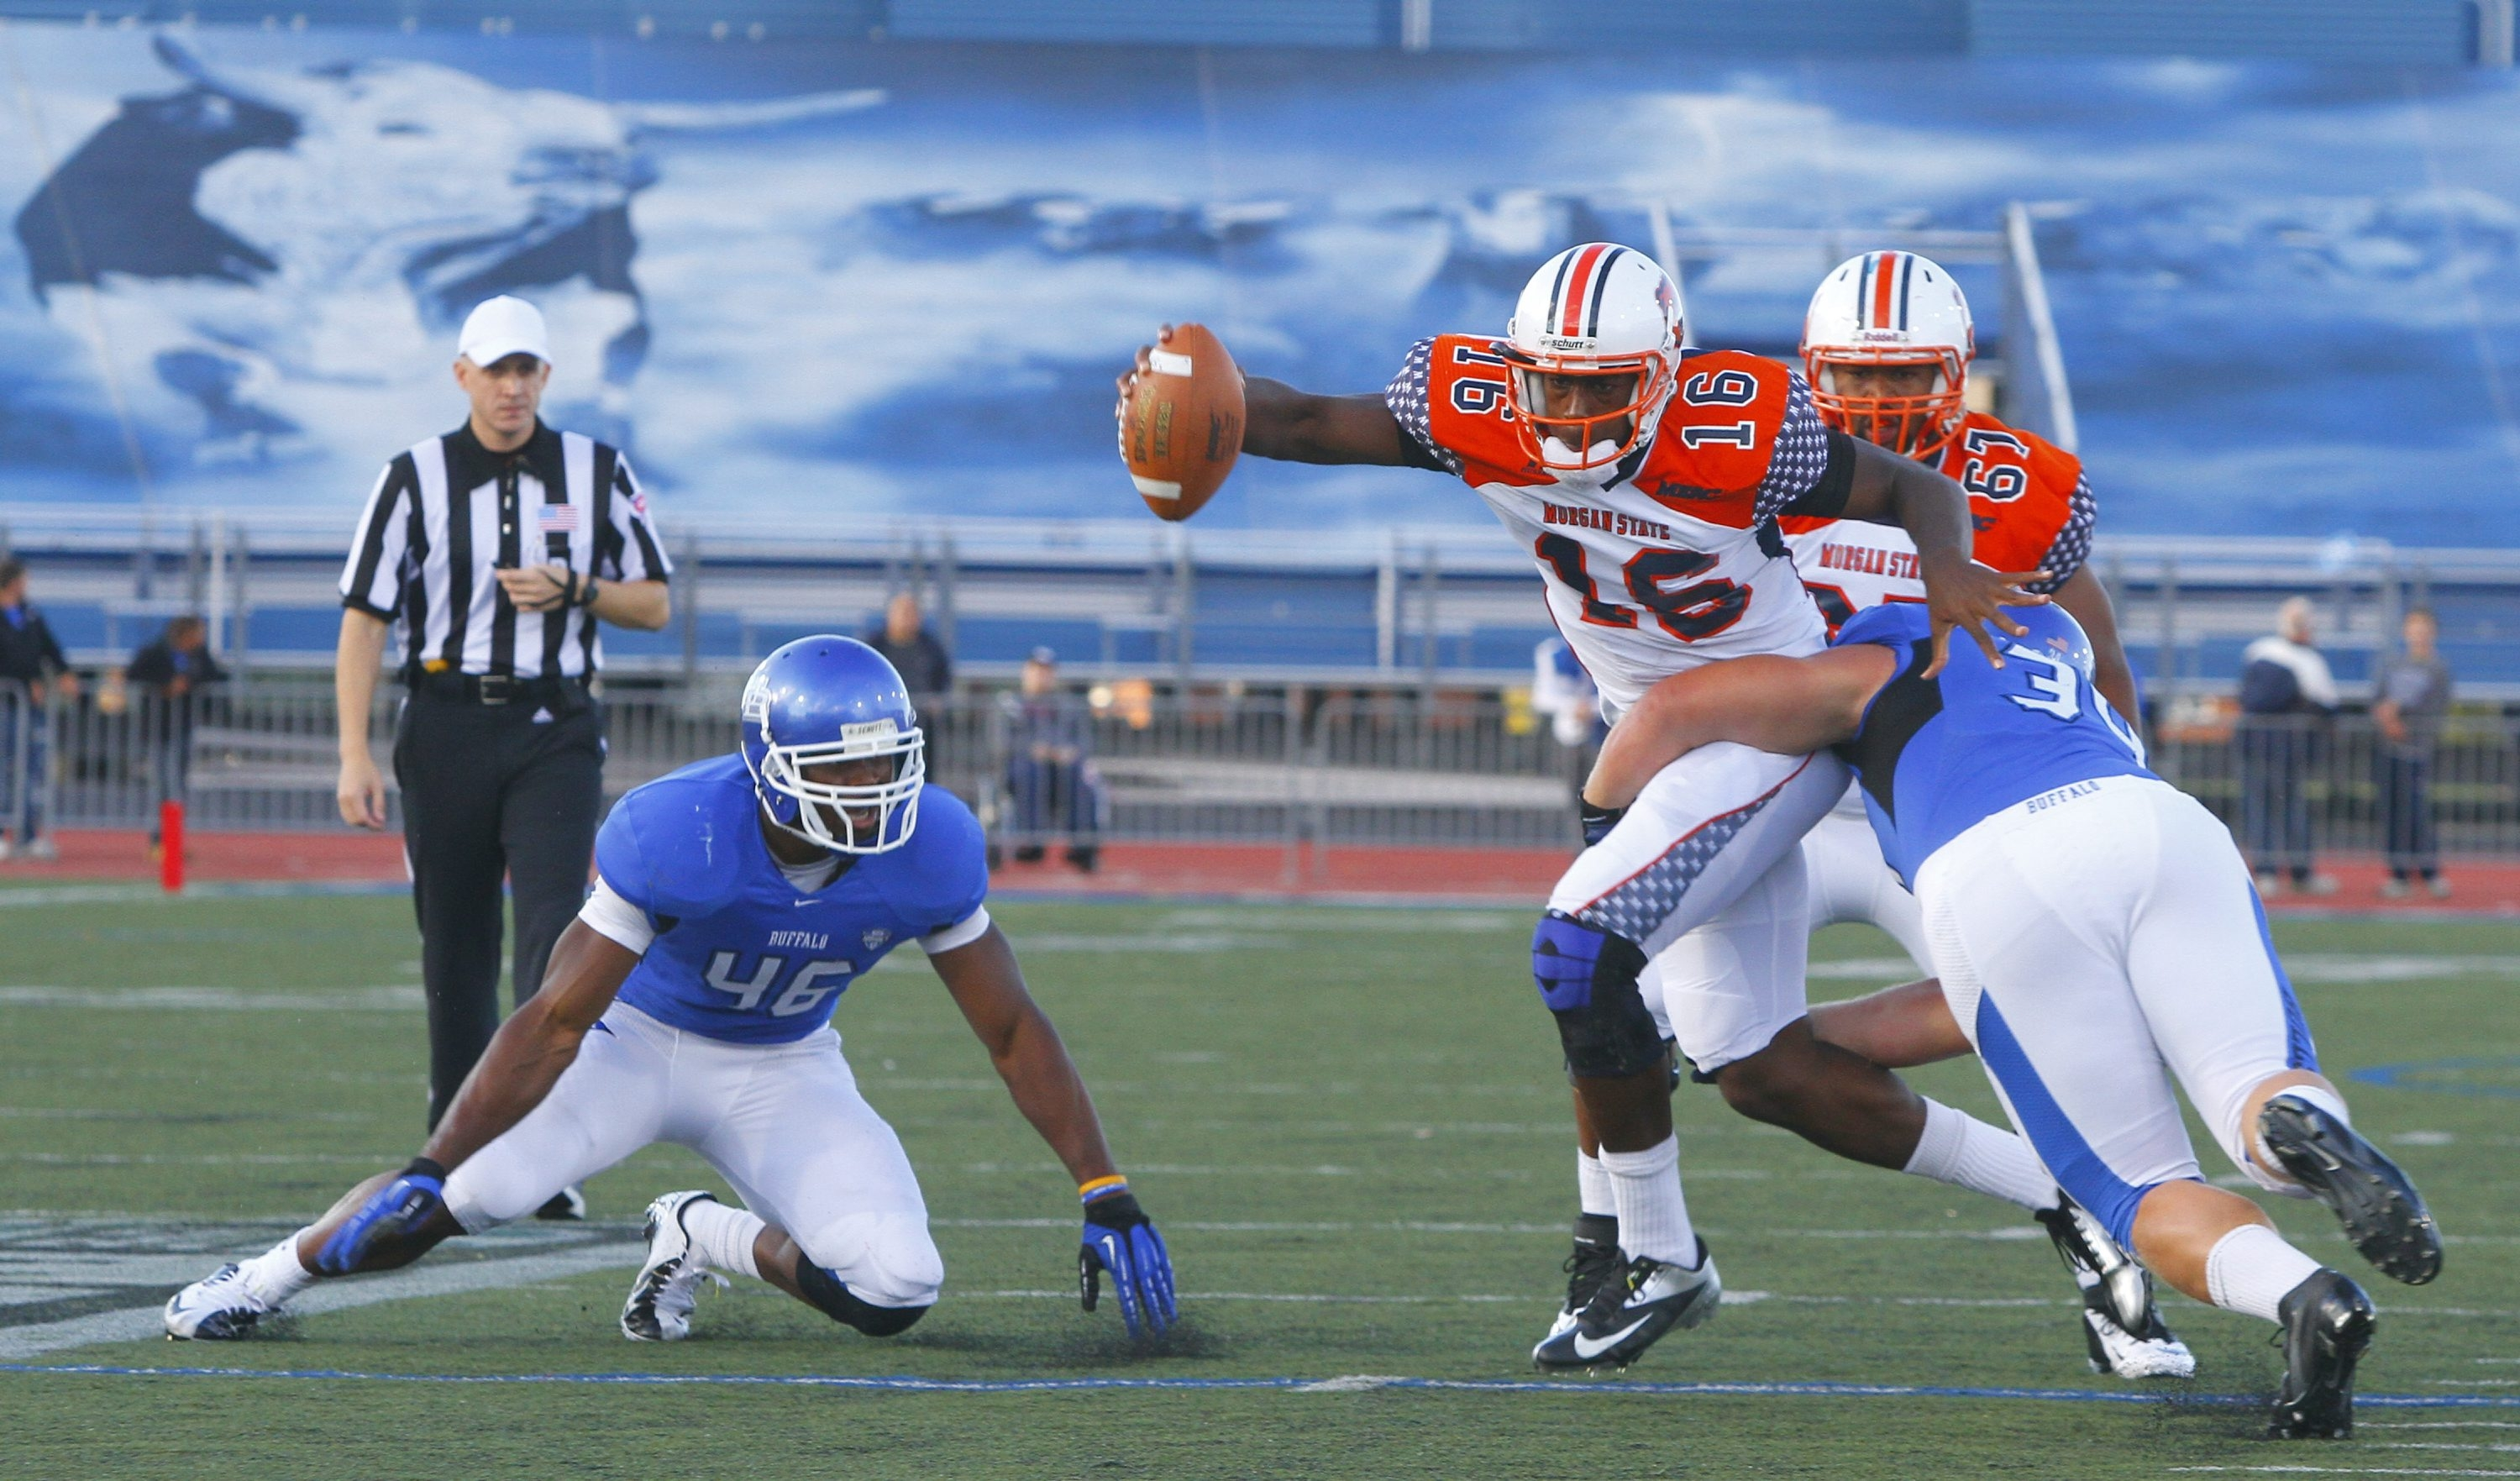 Colby Way of UB (34) will take aim on Bowling Green's offensive players this afternoon.